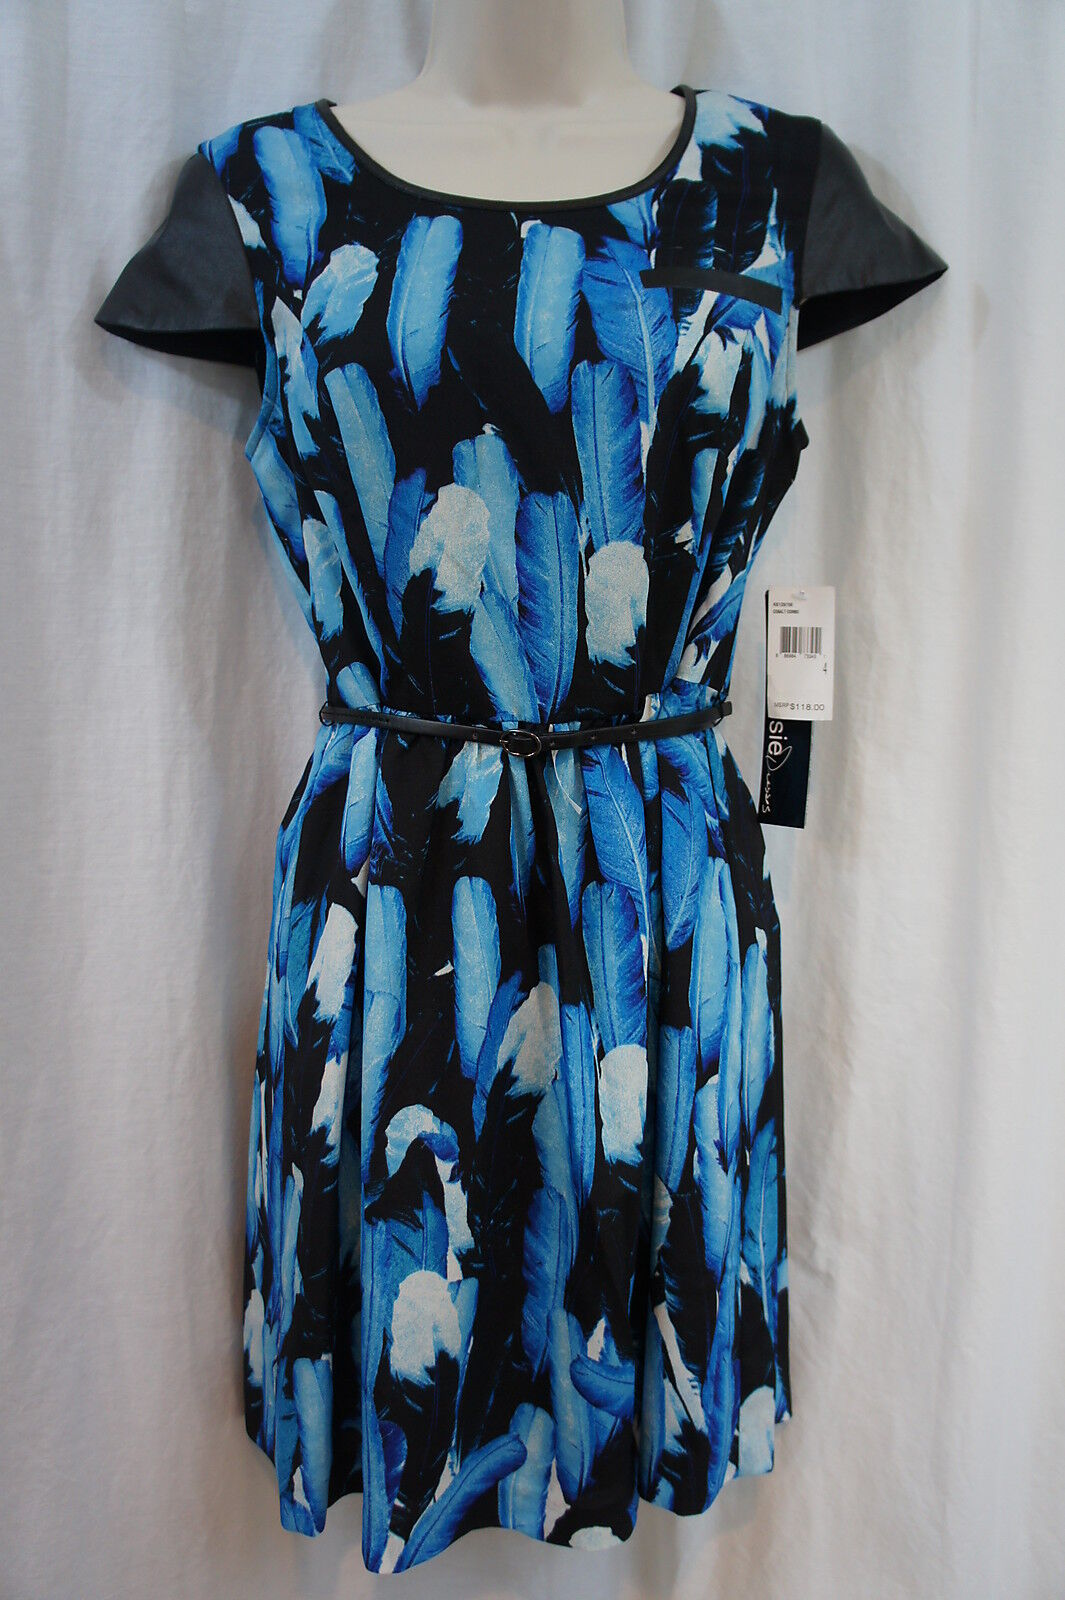 Kensie Dress Sz 6 Blau schwarz Cobalt Belted Feather Print Cap Sleeve Dress